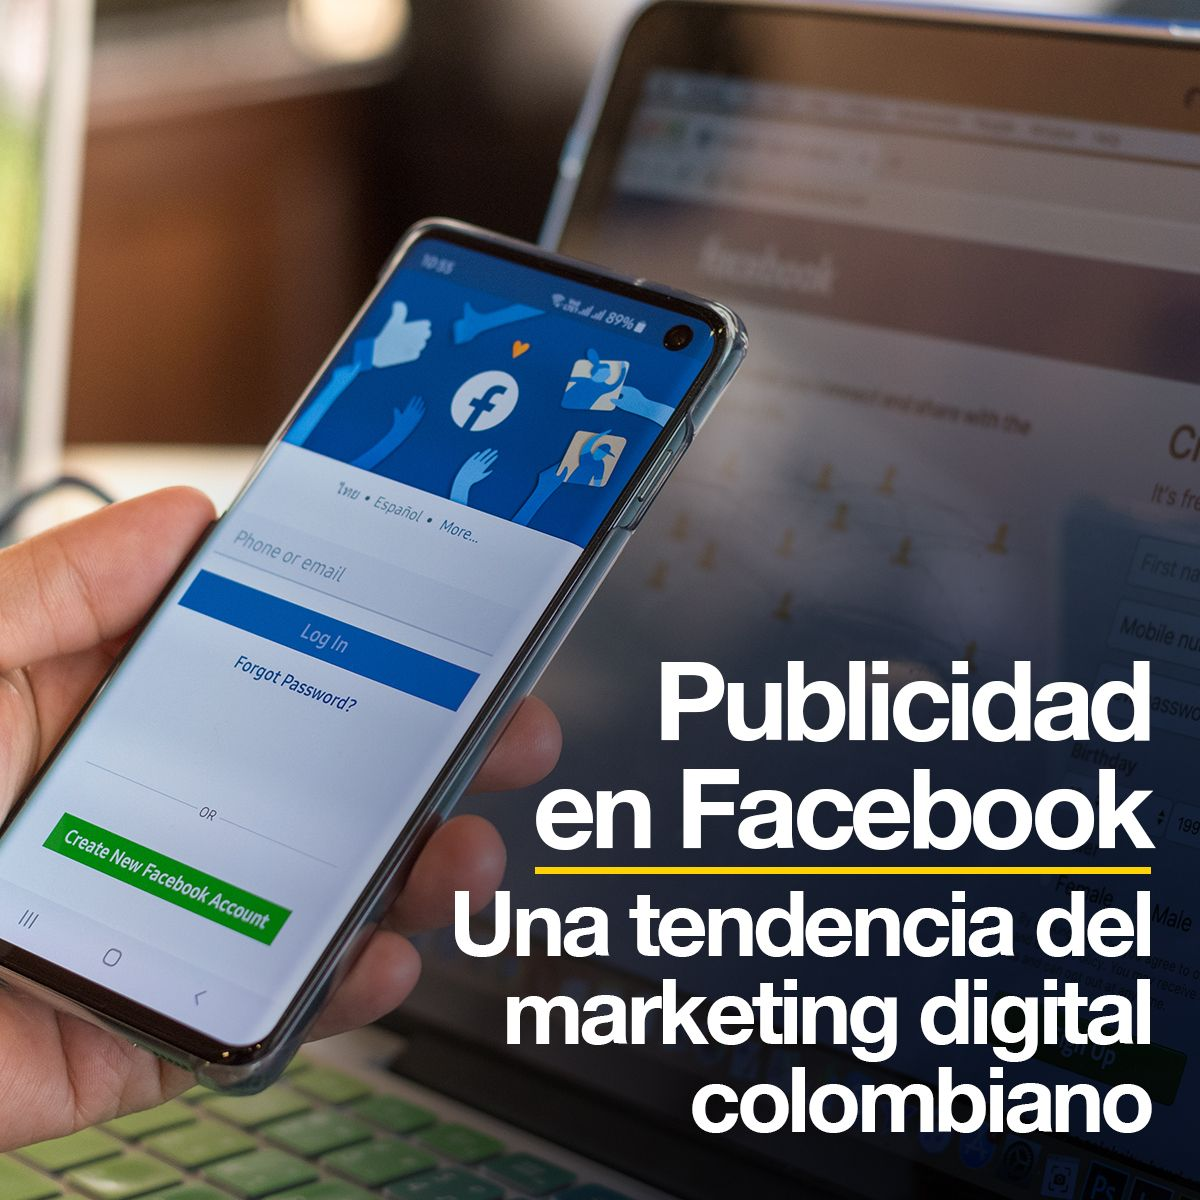 Publicidad en Facebook Una tendencia del marketing digital colombiano